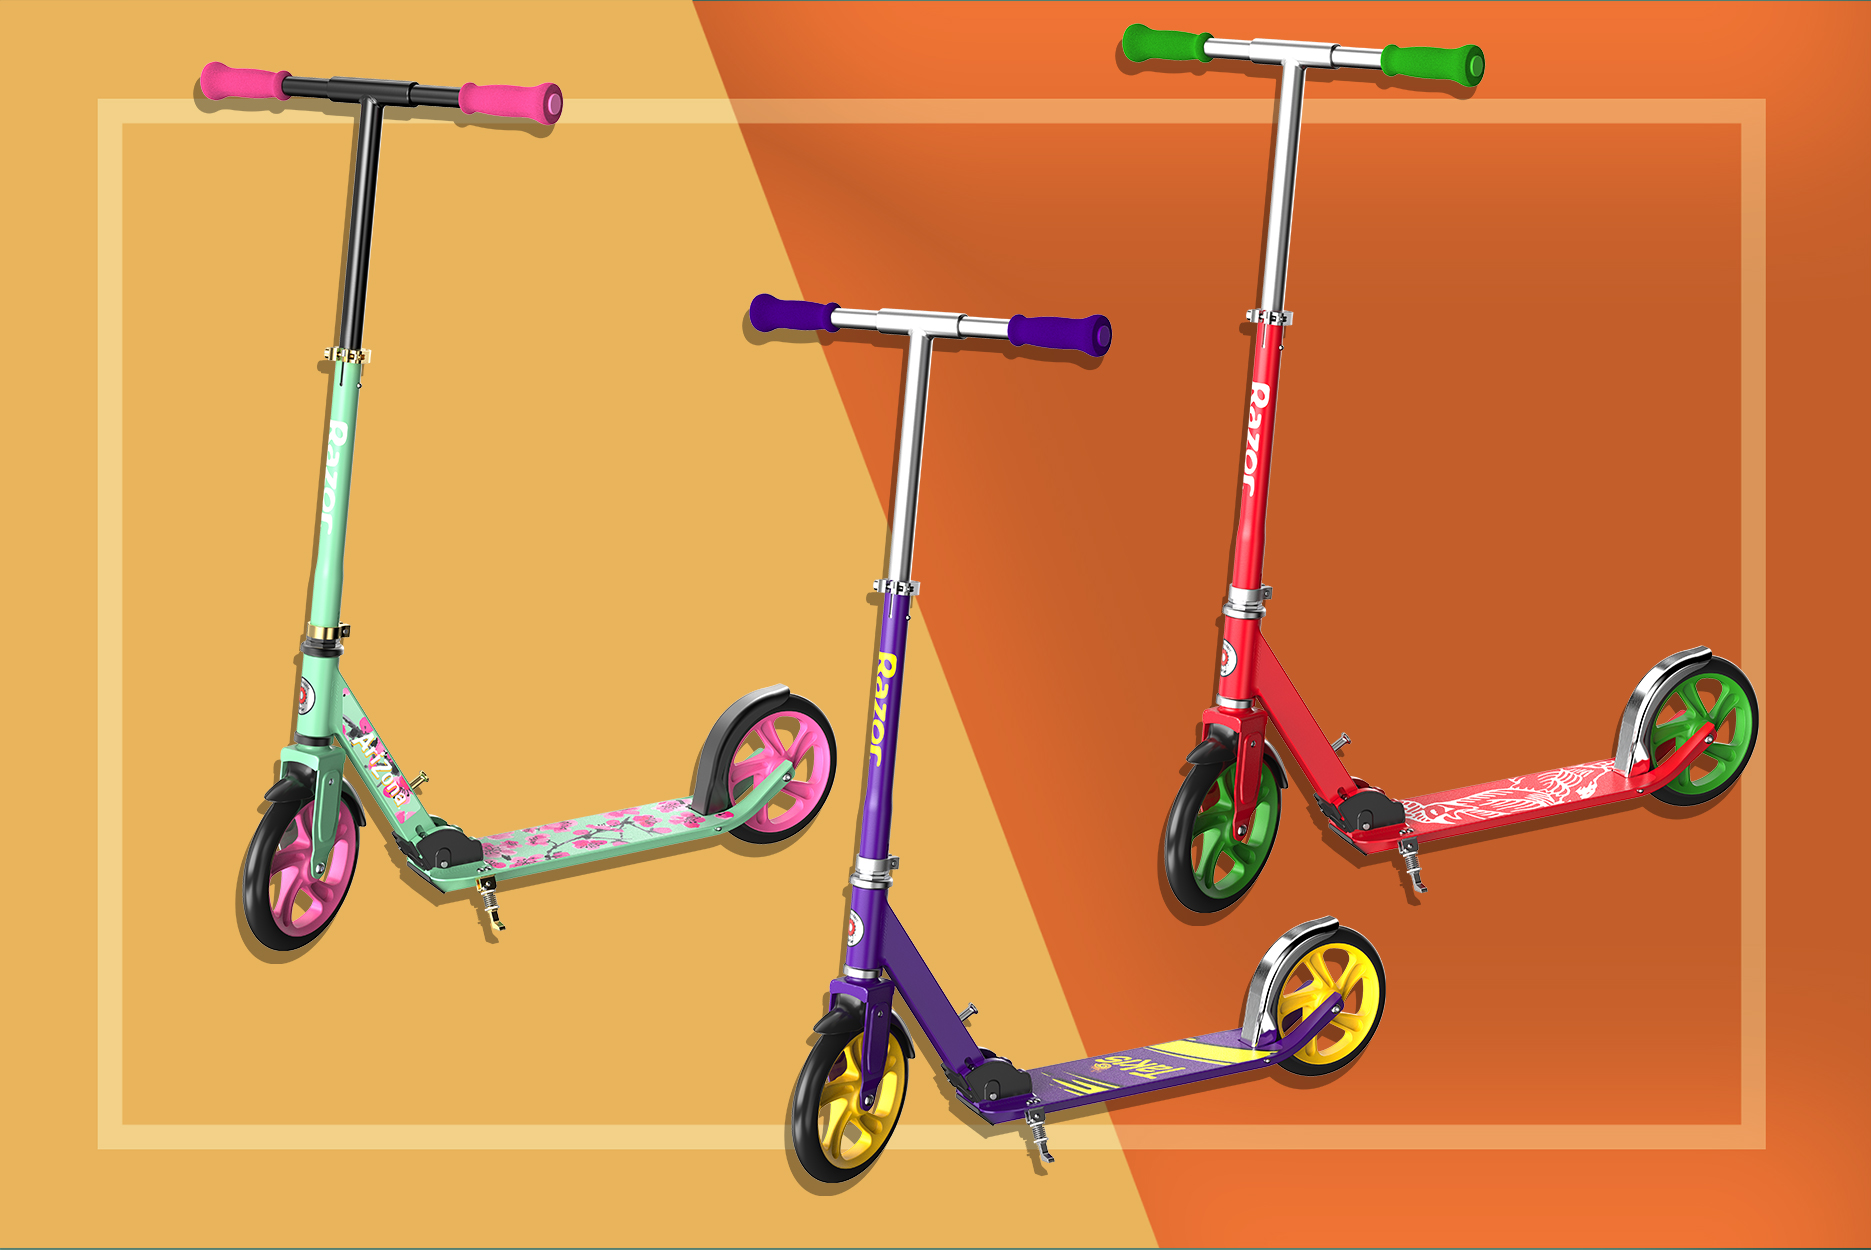 Food-Themed Razor Scooters